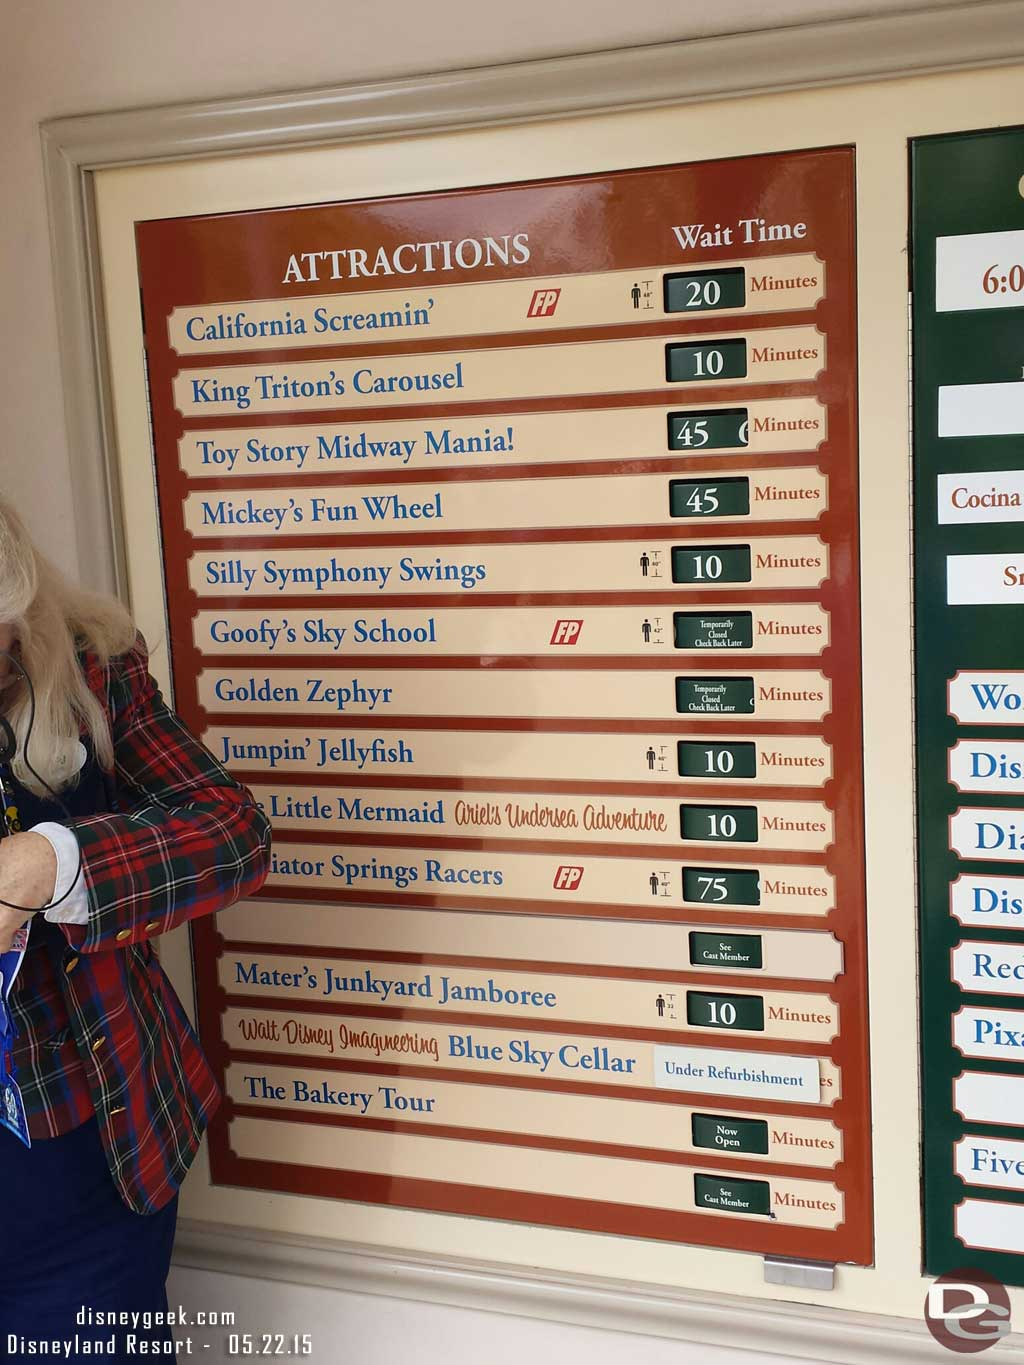 Some Disney California Adventure waits as of 1:13pm